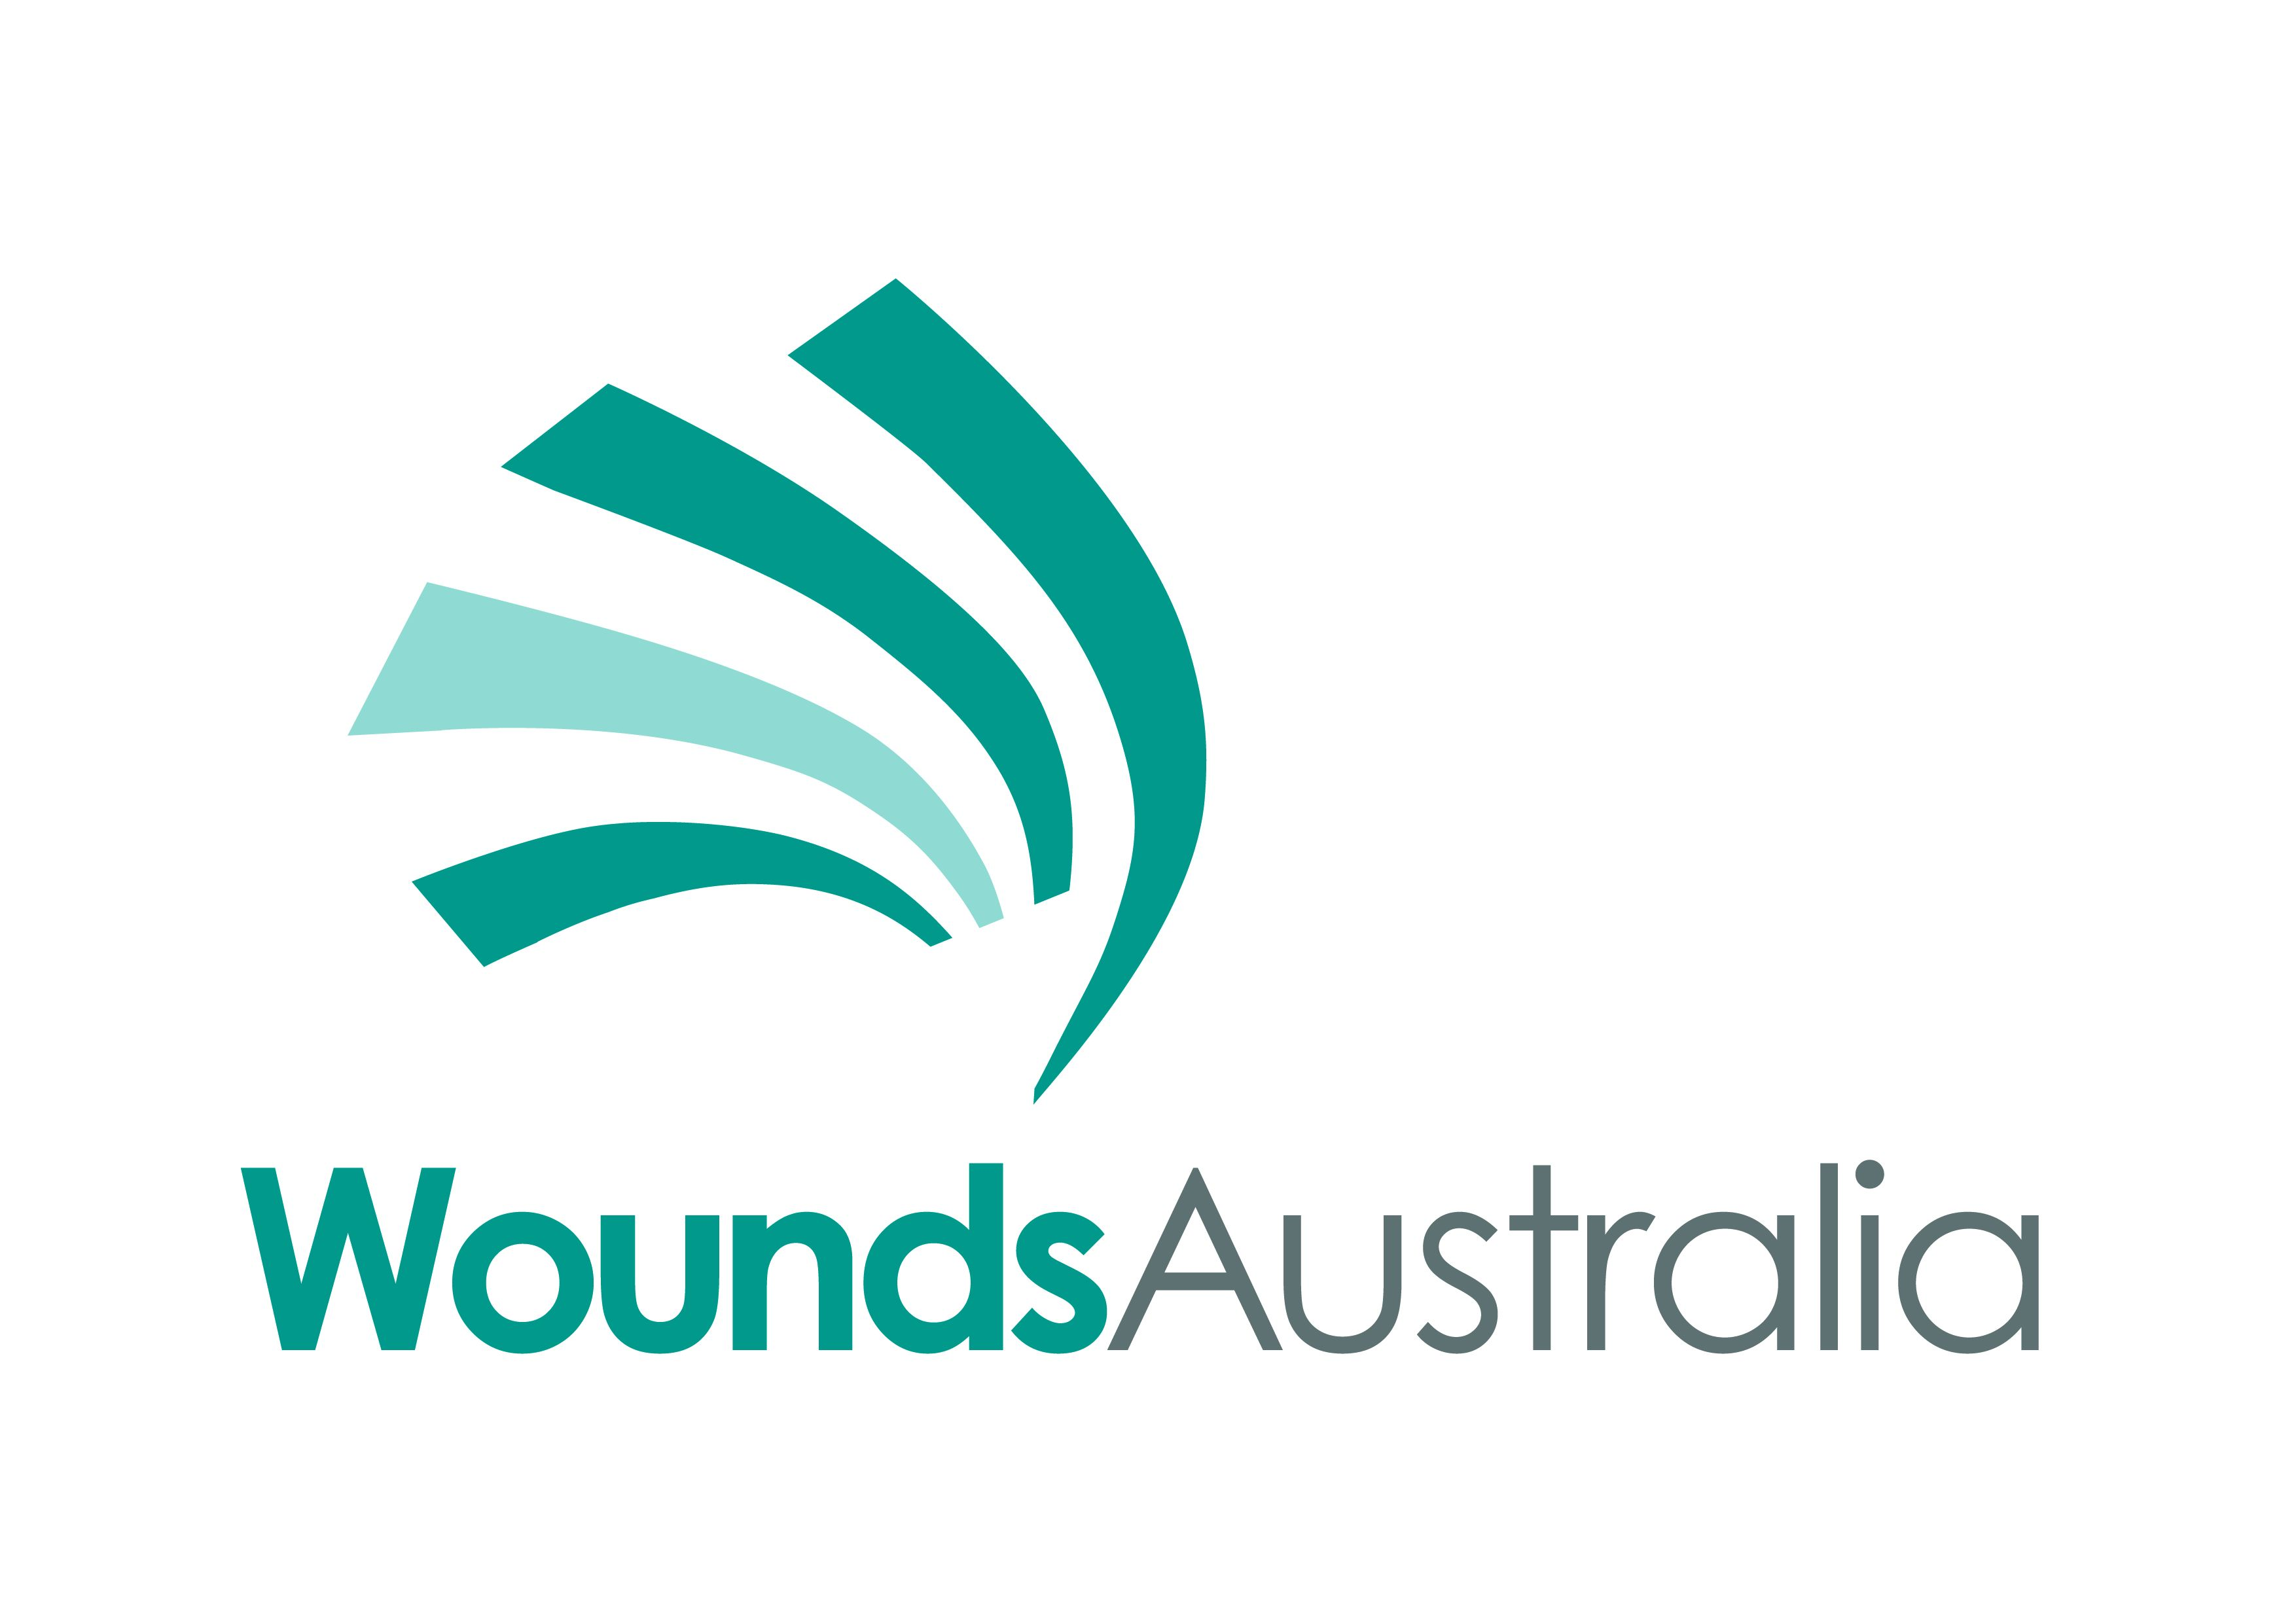 WoundsAu_logo_final_fullcolour.jpg